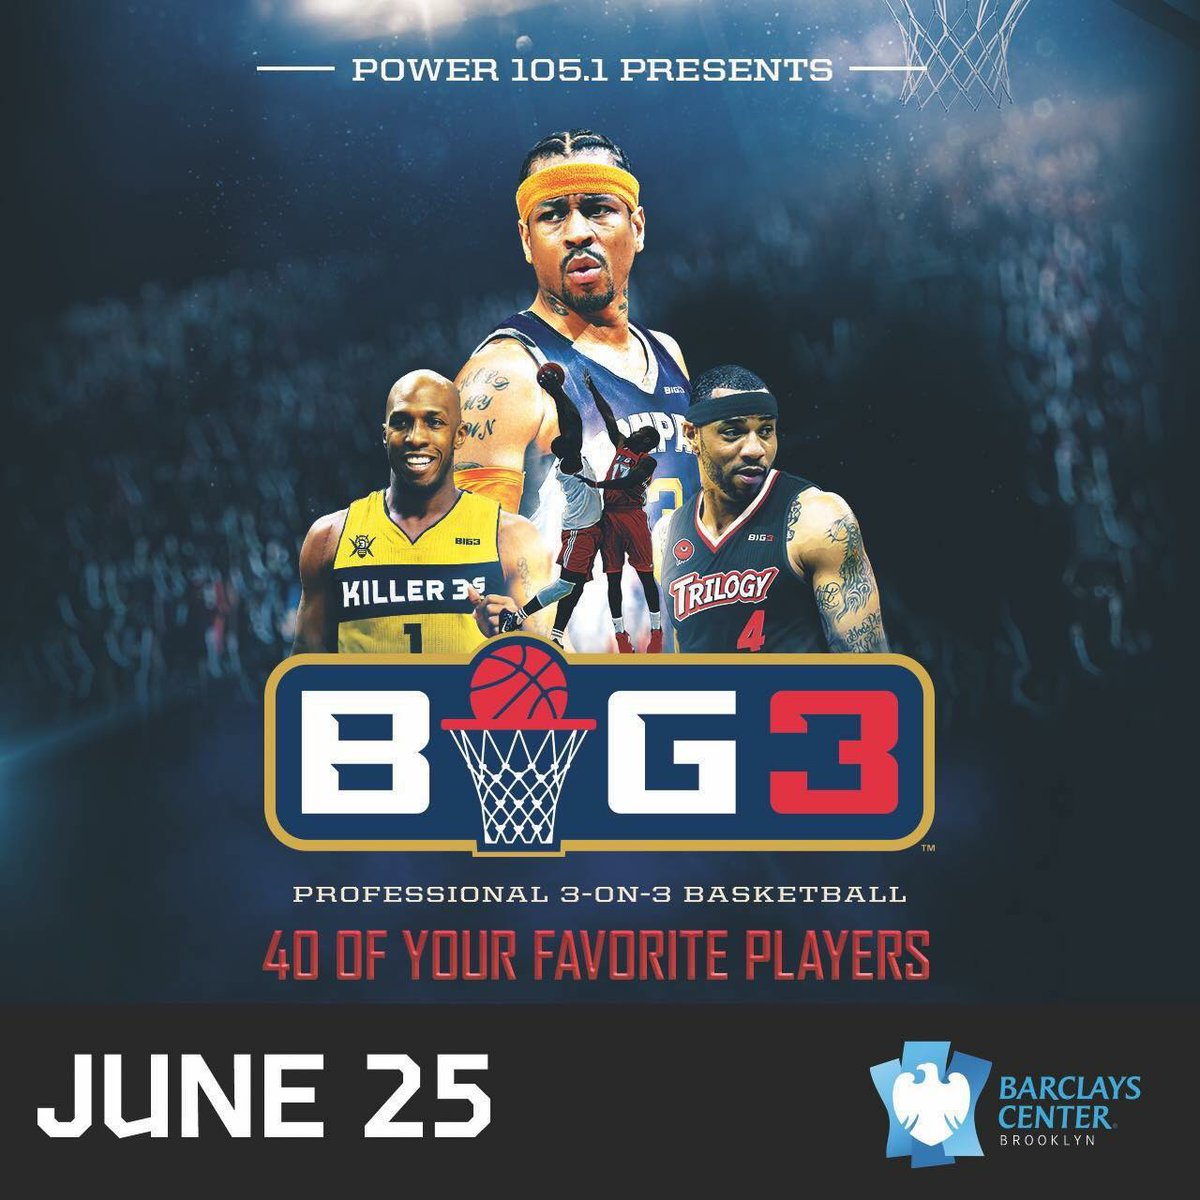 It's #Big3 day 🏀! Doors open at 12PM, the game kicks off around 1PM. 🎟...